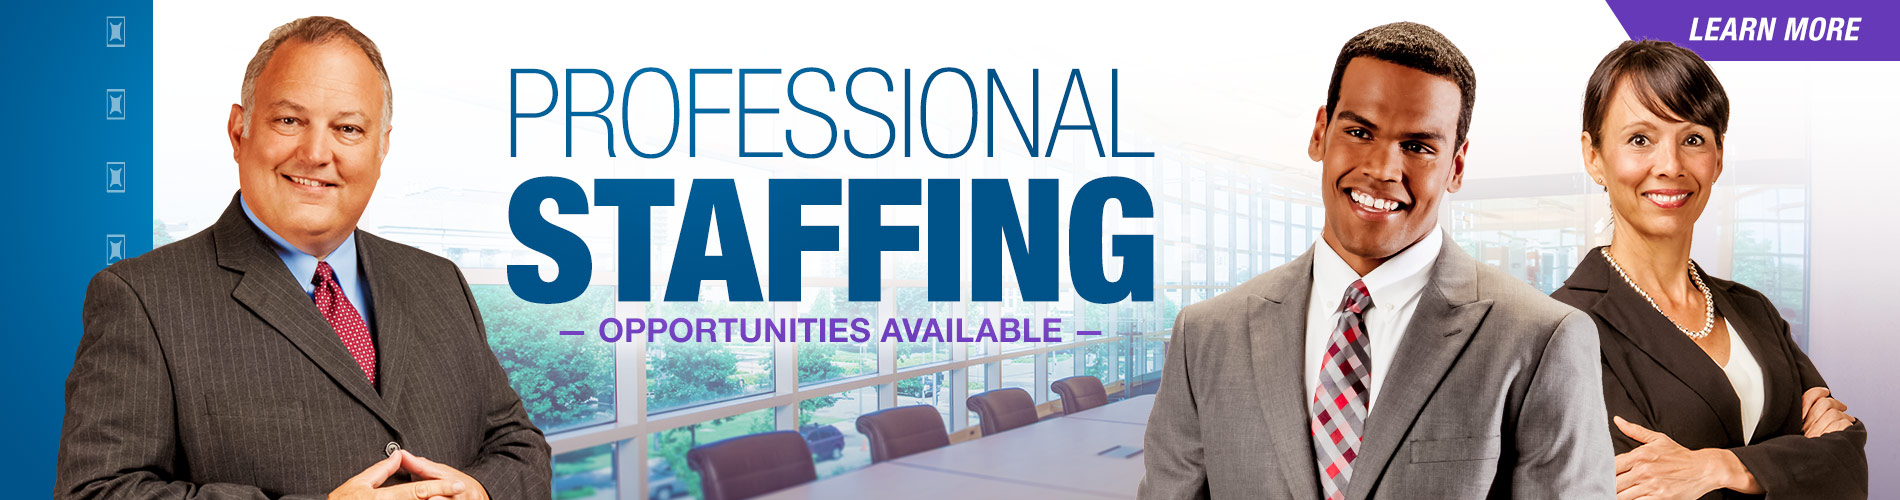 Professional Staffing